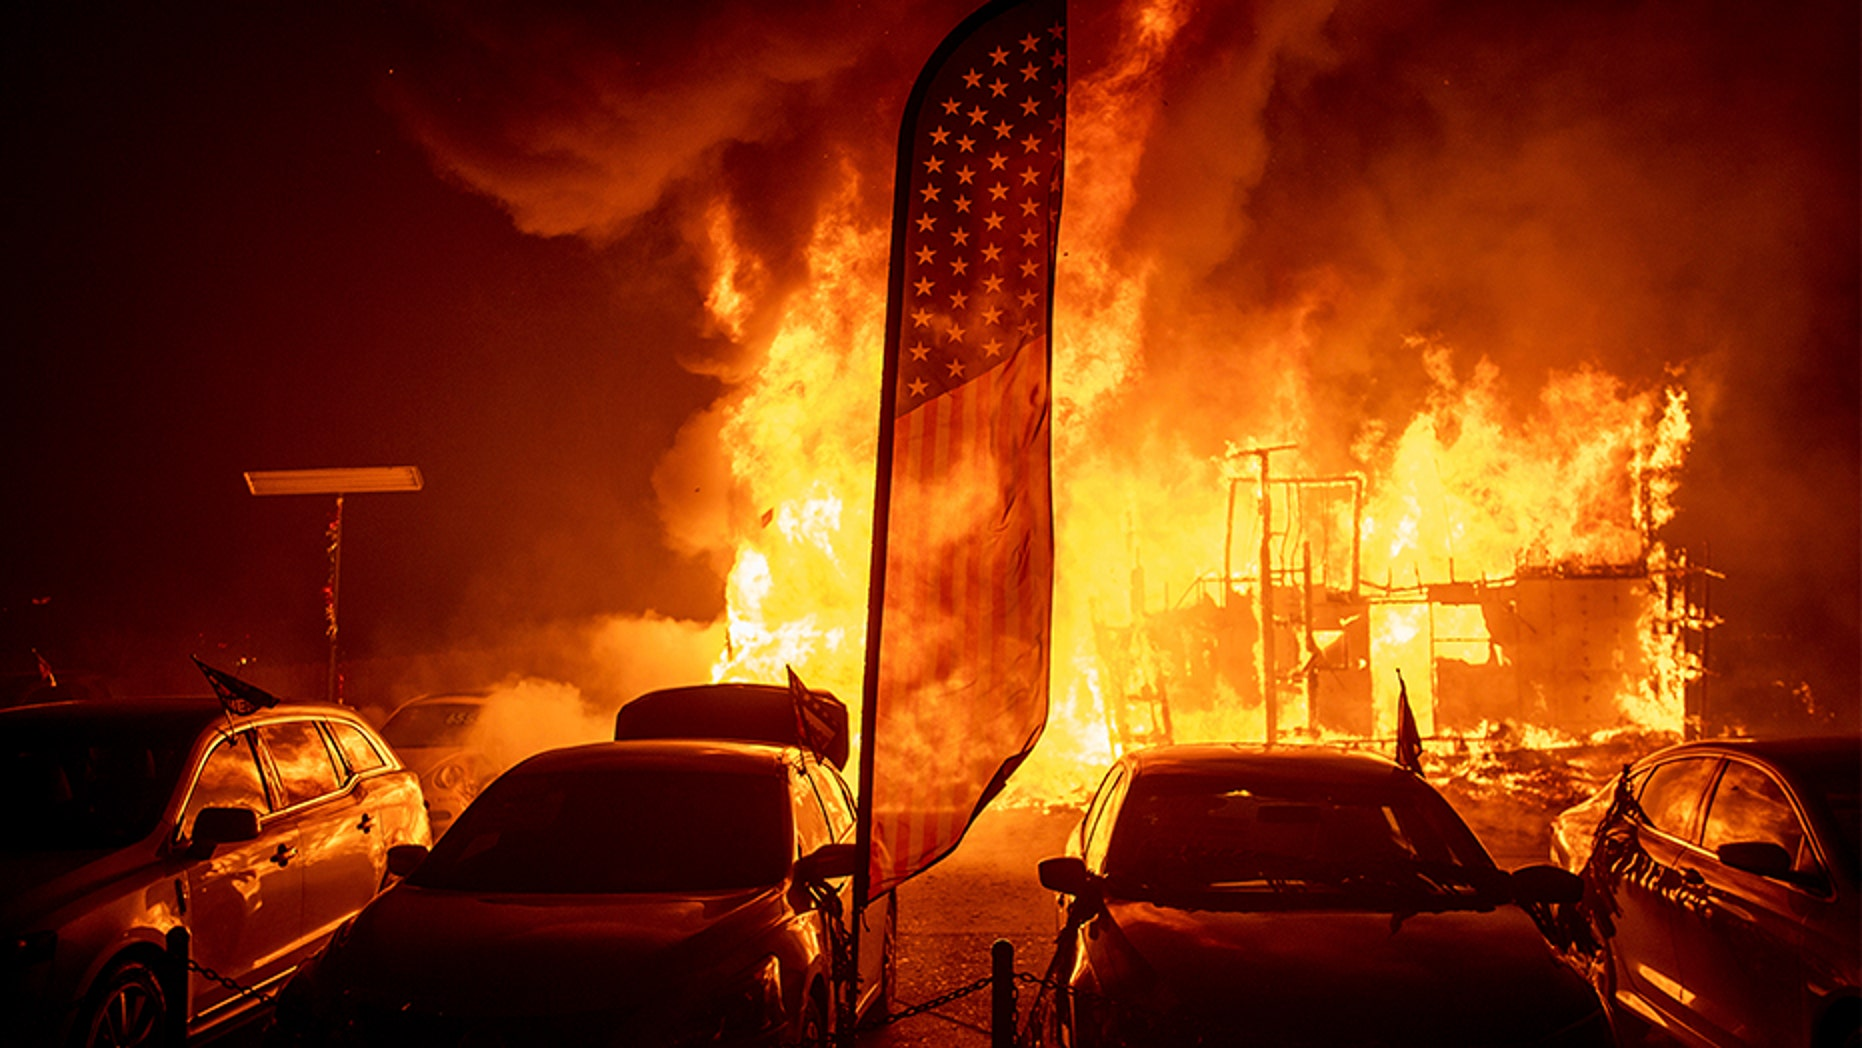 California wildfires: Massive fire almost QUADRUPLES in size to 110 square miles